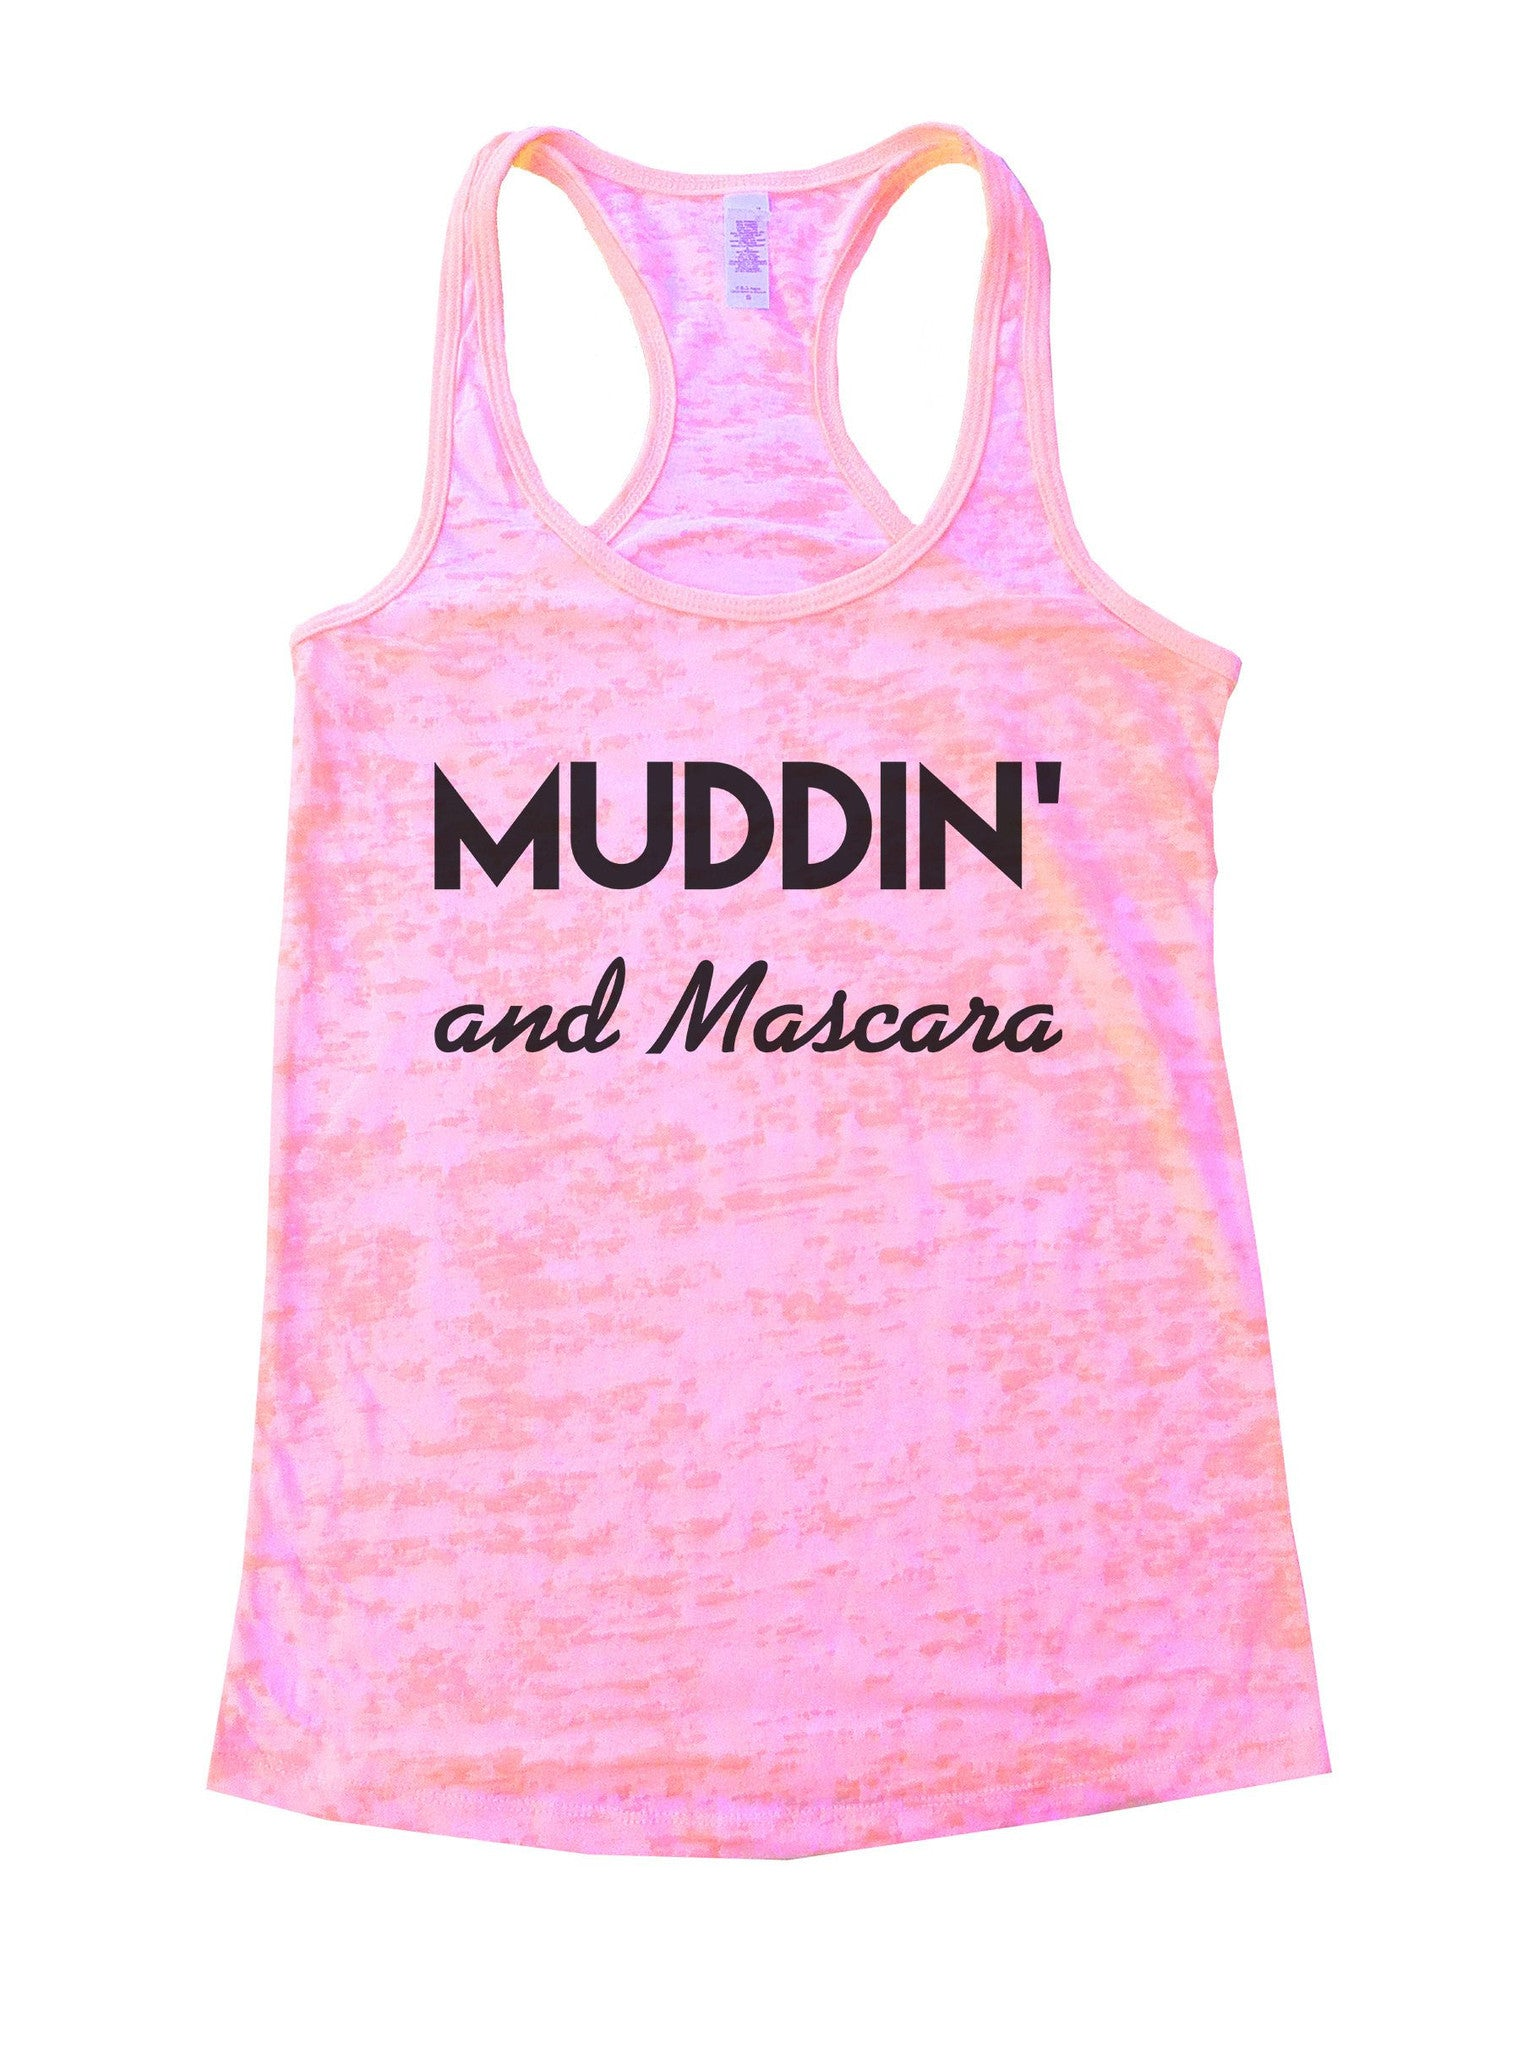 Muddin And Mascara Burnout Tank Top By BurnoutTankTops.com - 803 - Funny Shirts Tank Tops Burnouts and Triblends  - 1